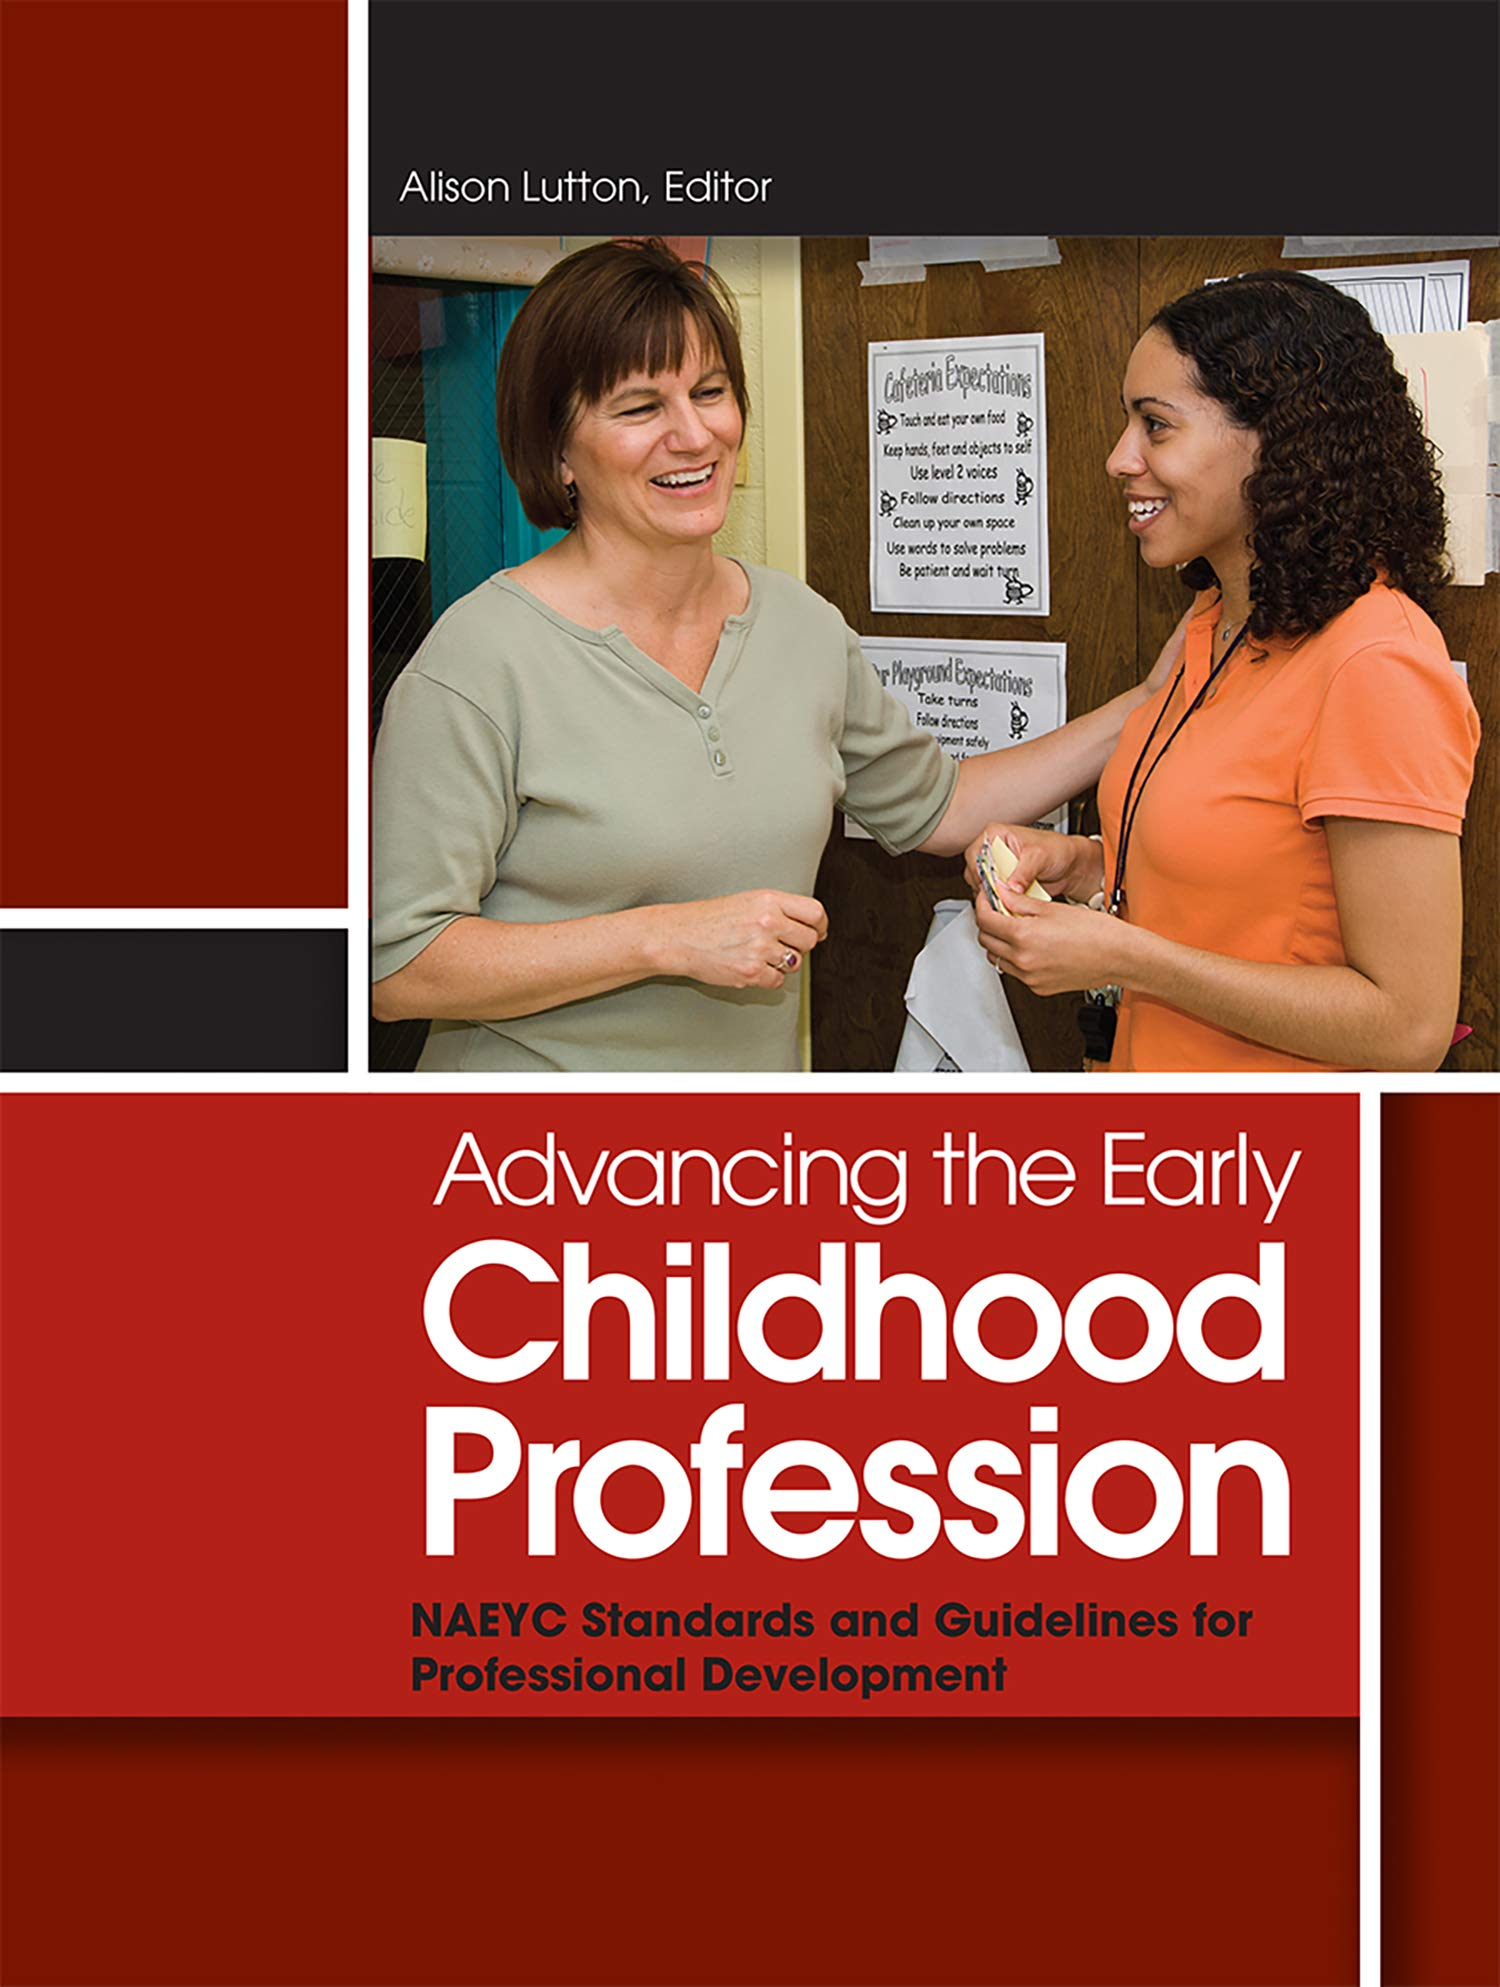 Advancing the Early Childhood Profession: NAEYC Standards